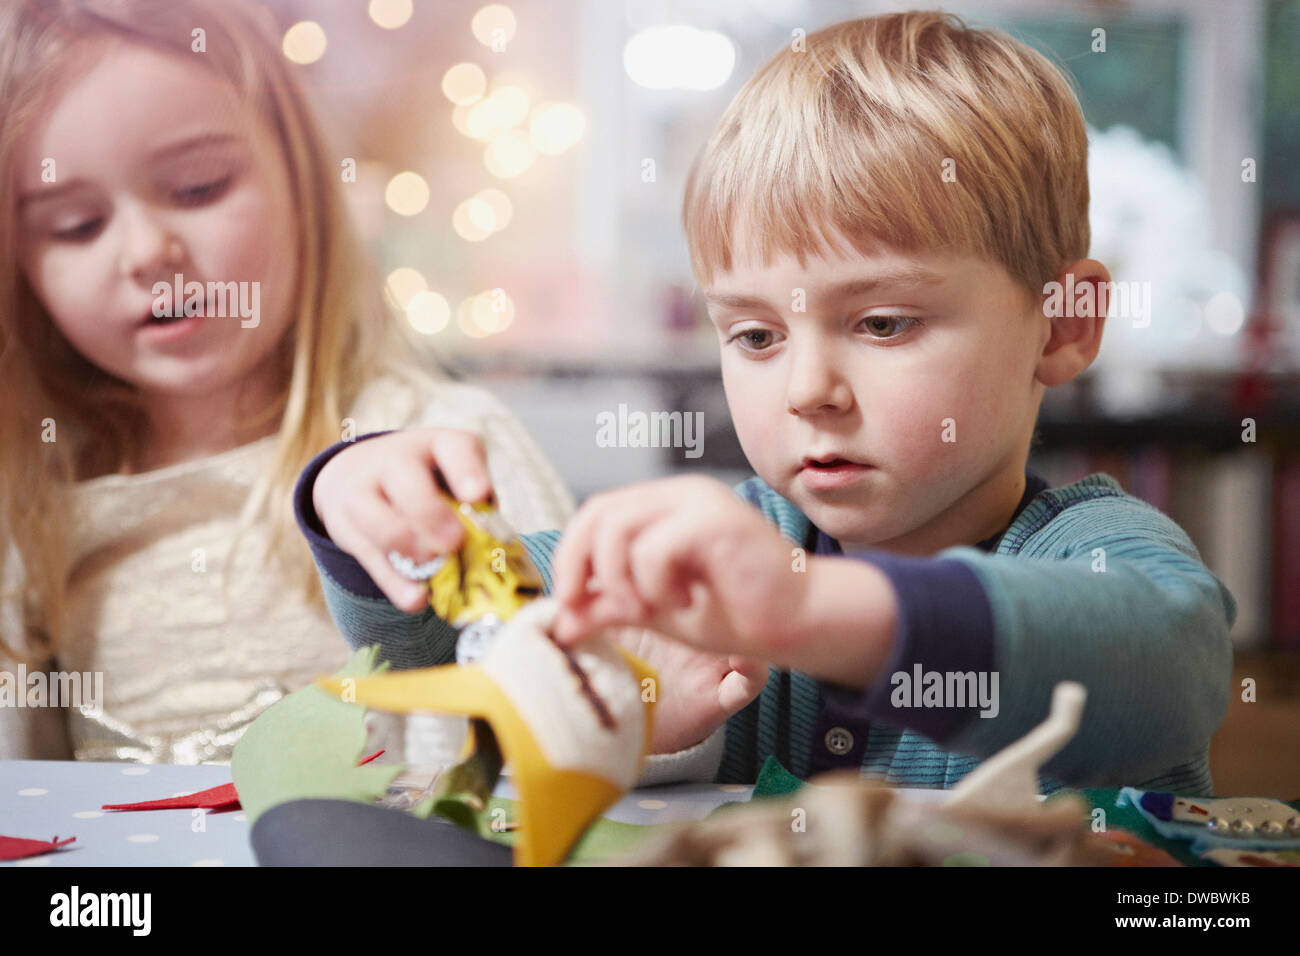 Young brother and sister crafting at kitchen table - Stock Image